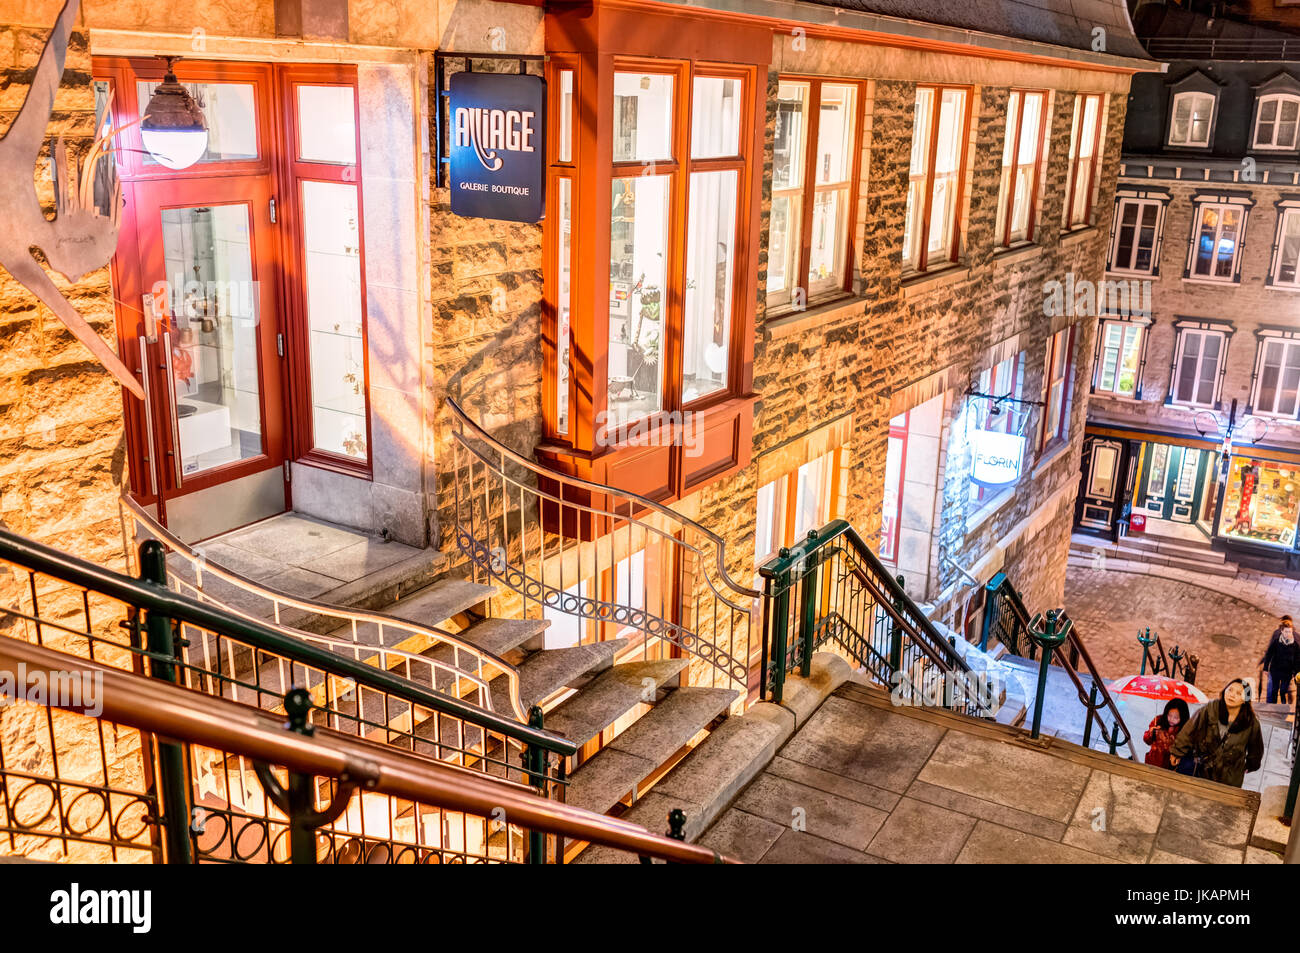 Quebec City, Canada - May 30, 2017: People walking up famous stairs or steps on lower old town street Rue du Petit Champlain by restaurants Stock Photo